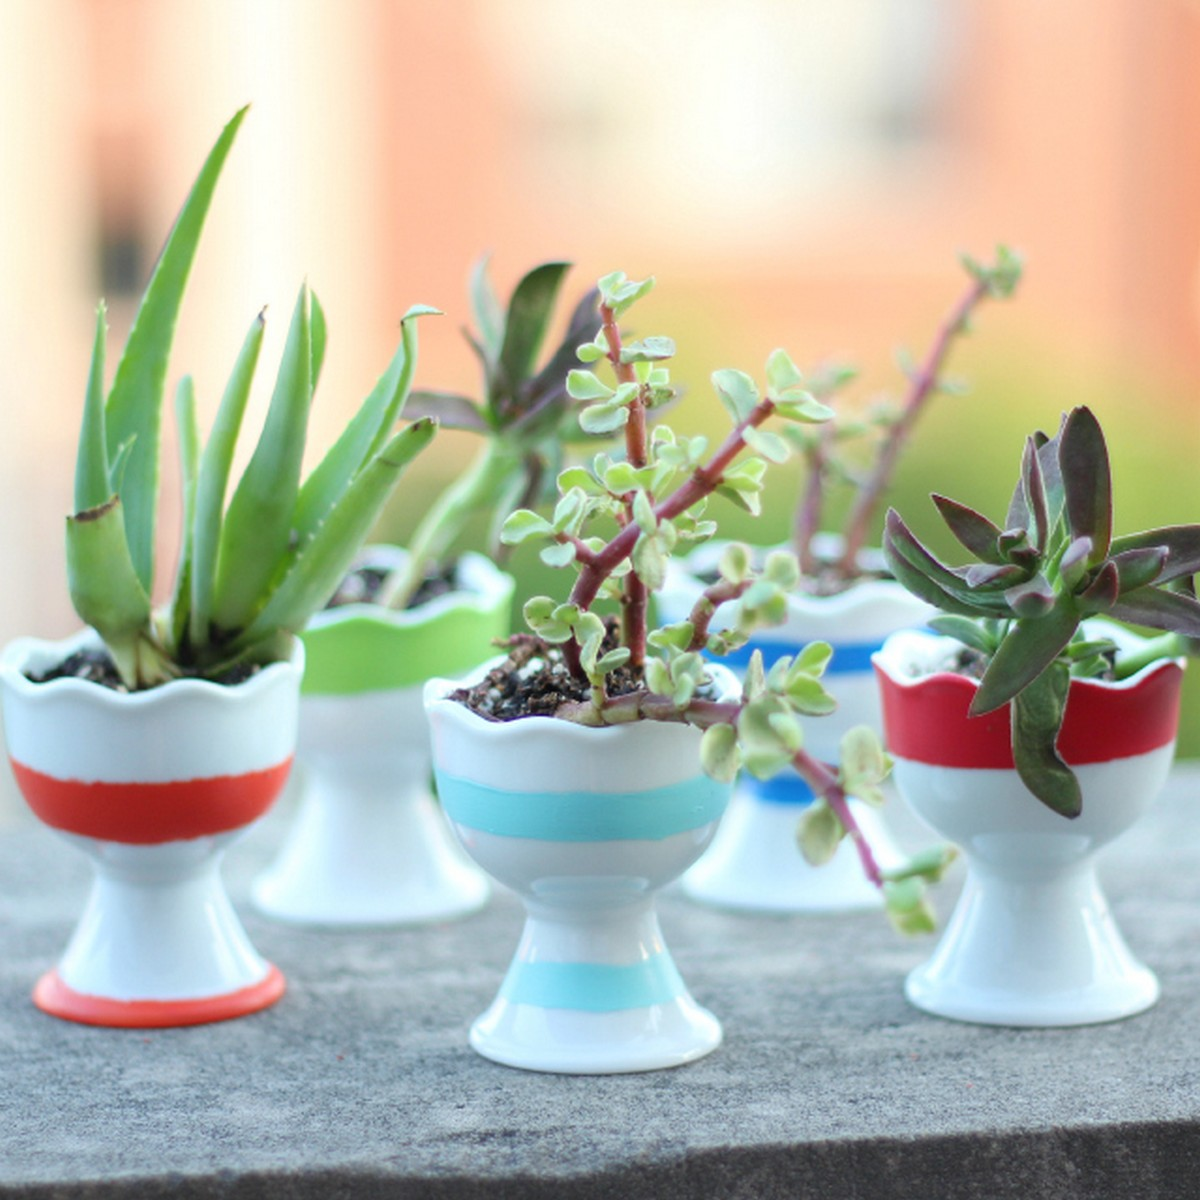 Try one of these ideas for simple DIY vase projects, artfully arranging flowers in common household wares and other creative display concepts.